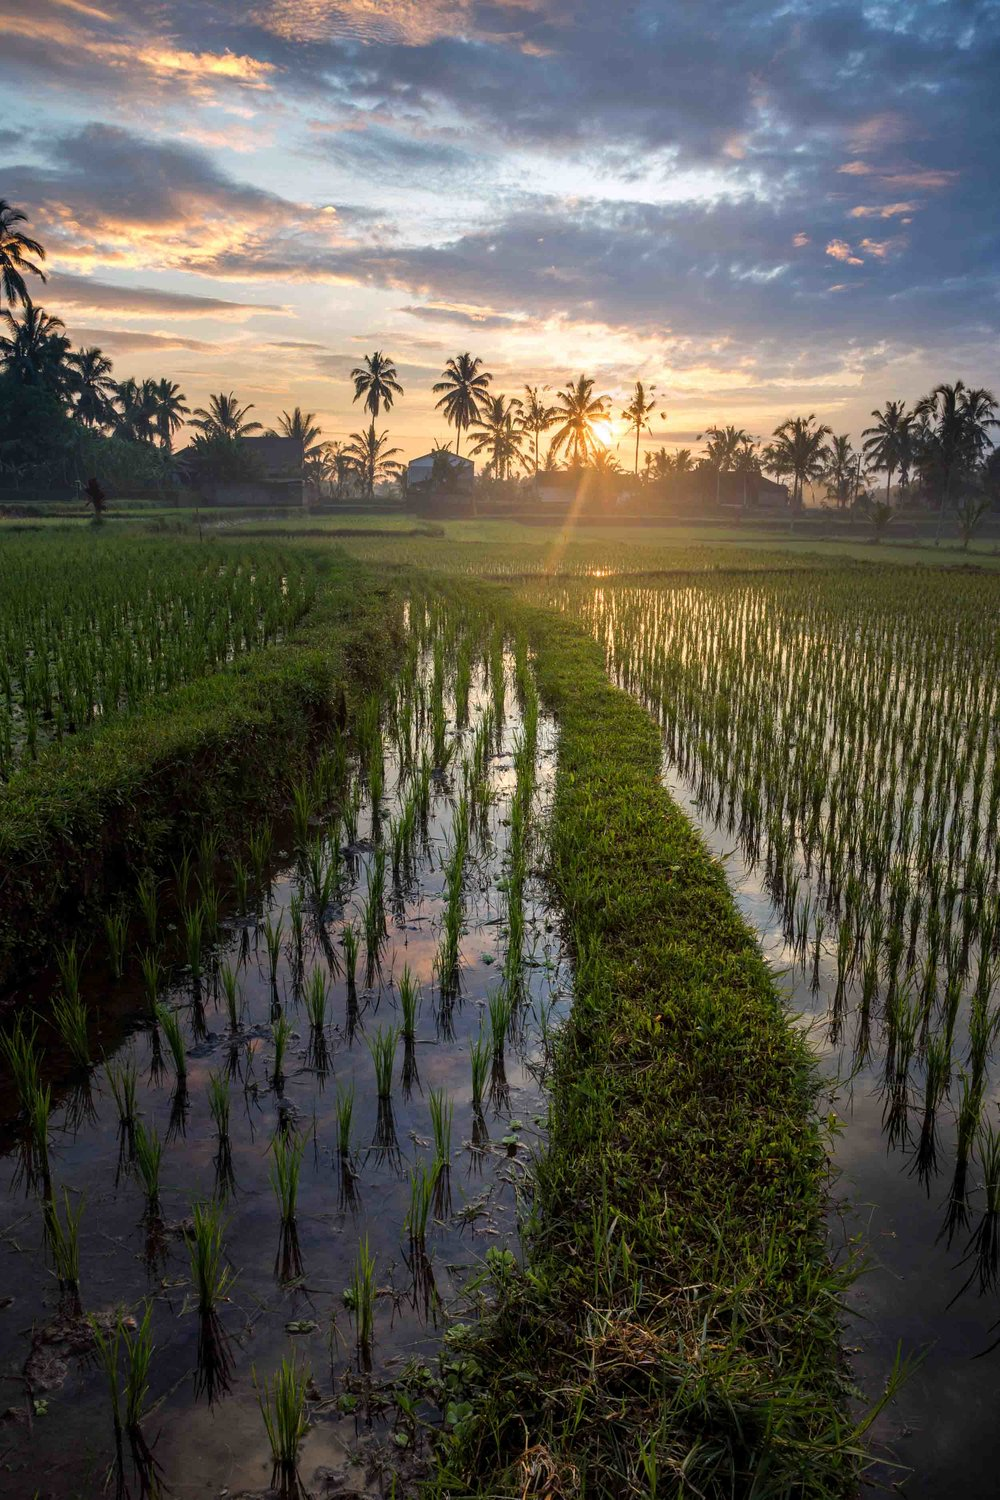 bali indonesia sunrise over rice paddies fields reflection in water colourful outdoors landscape.jpg